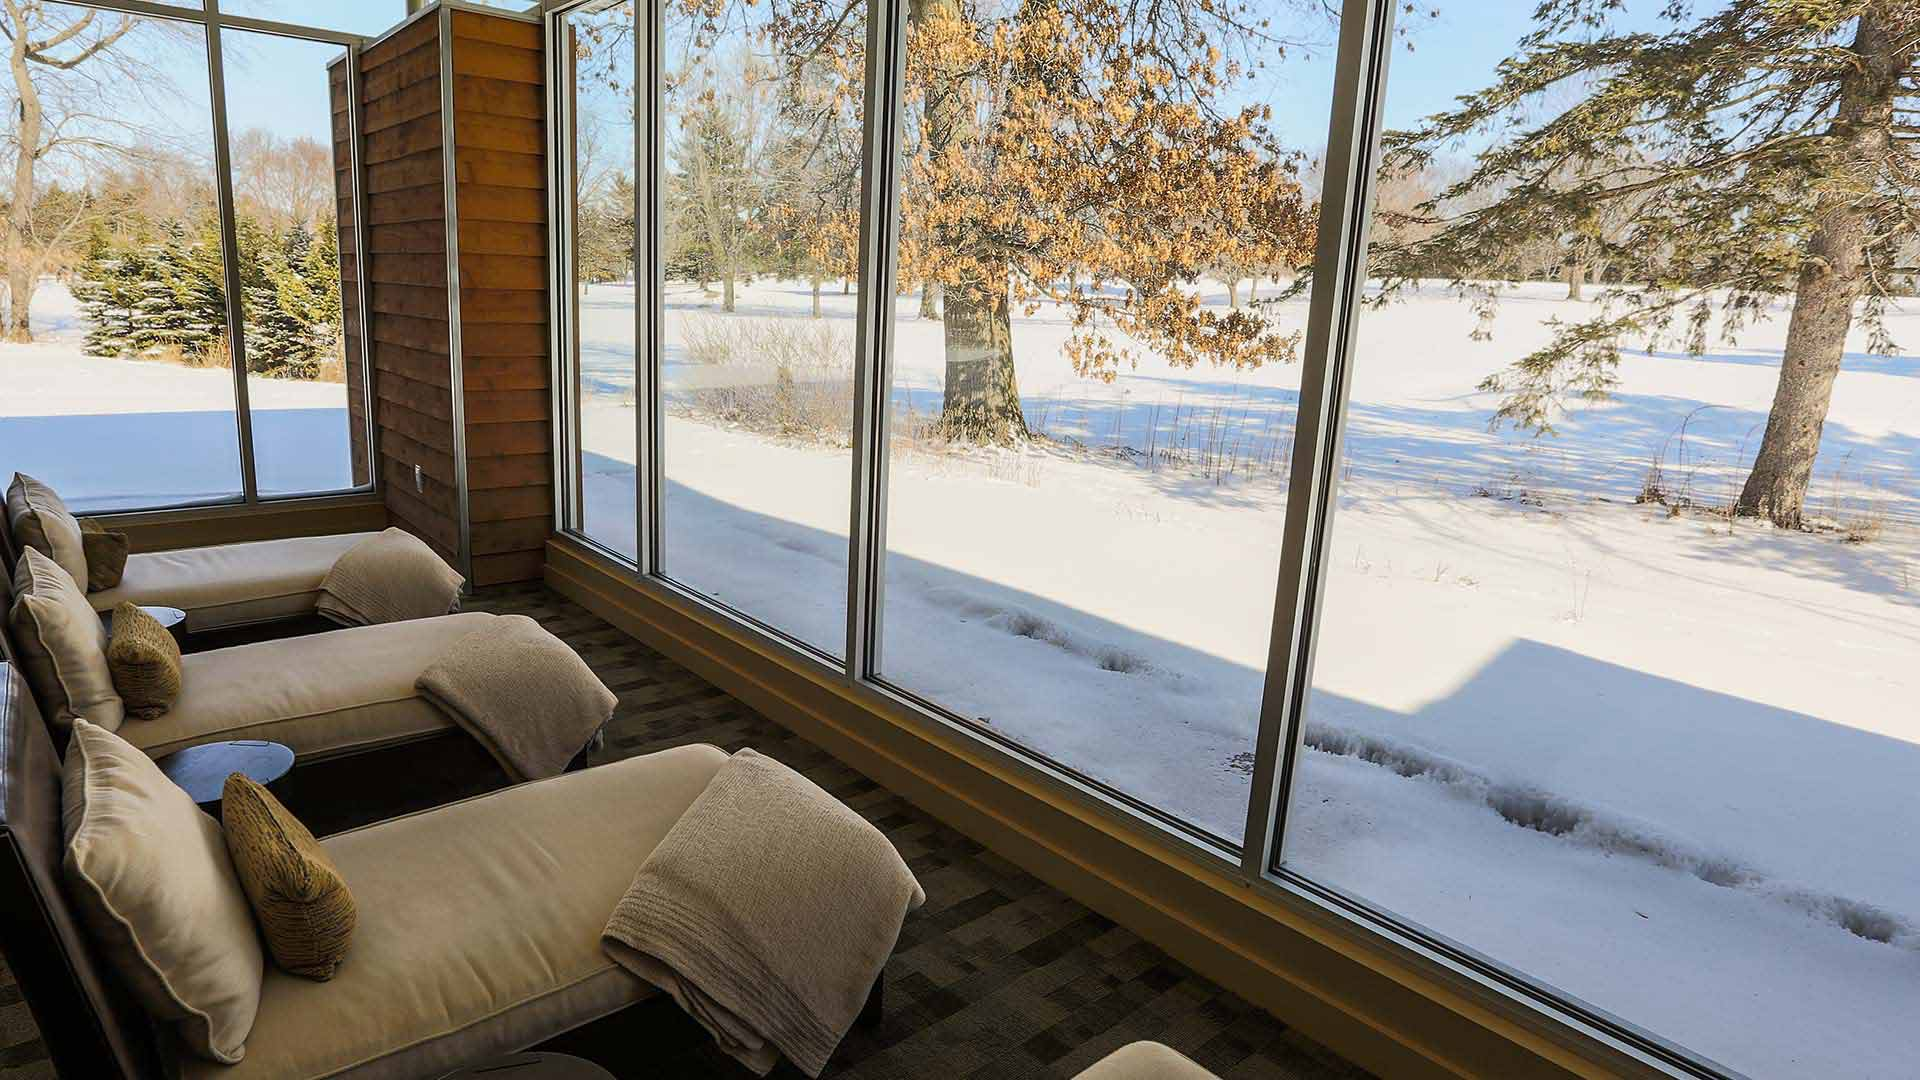 January Wellness Month at Evensong Spa